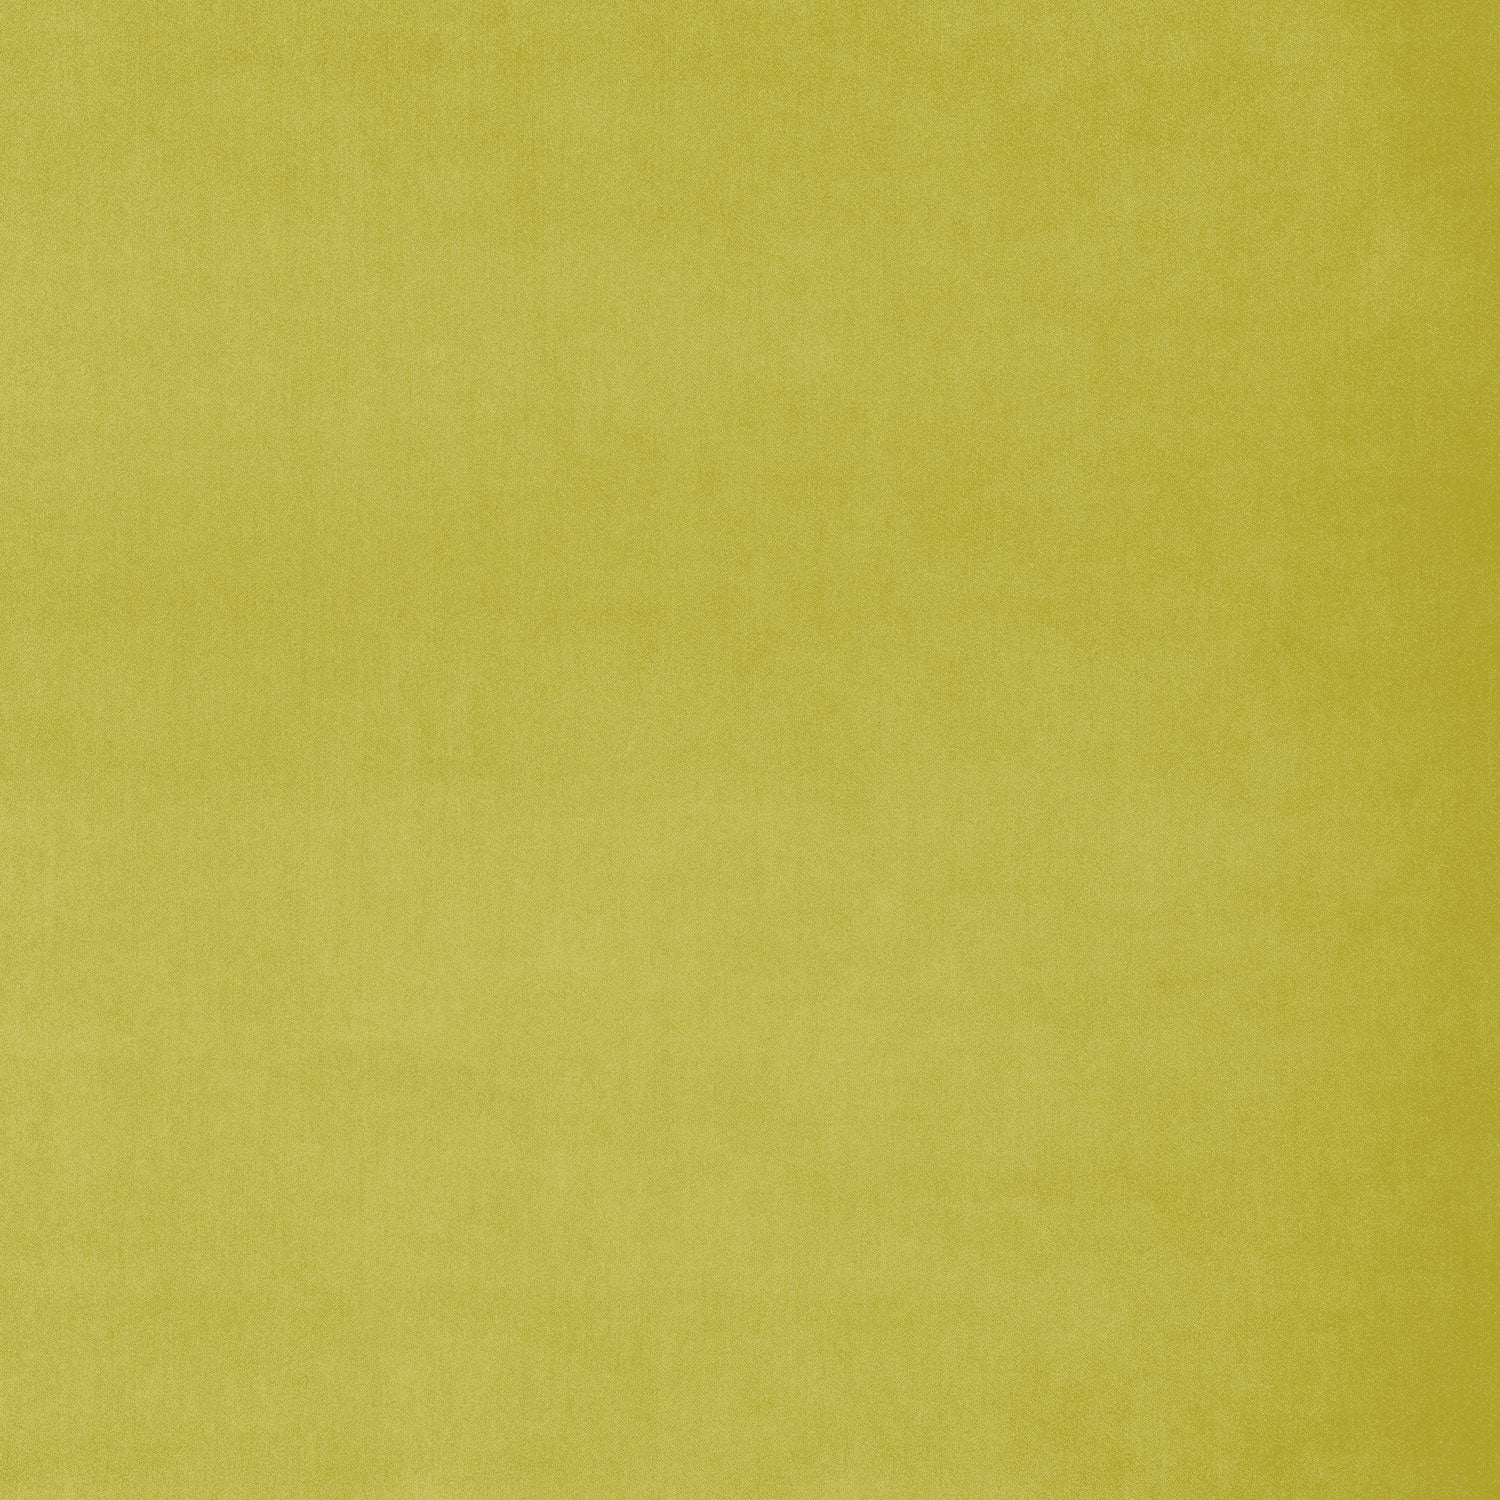 Fabric swatch of a yellow-green plain velvet fabric for curtains and upholstery with a stain resistant finish